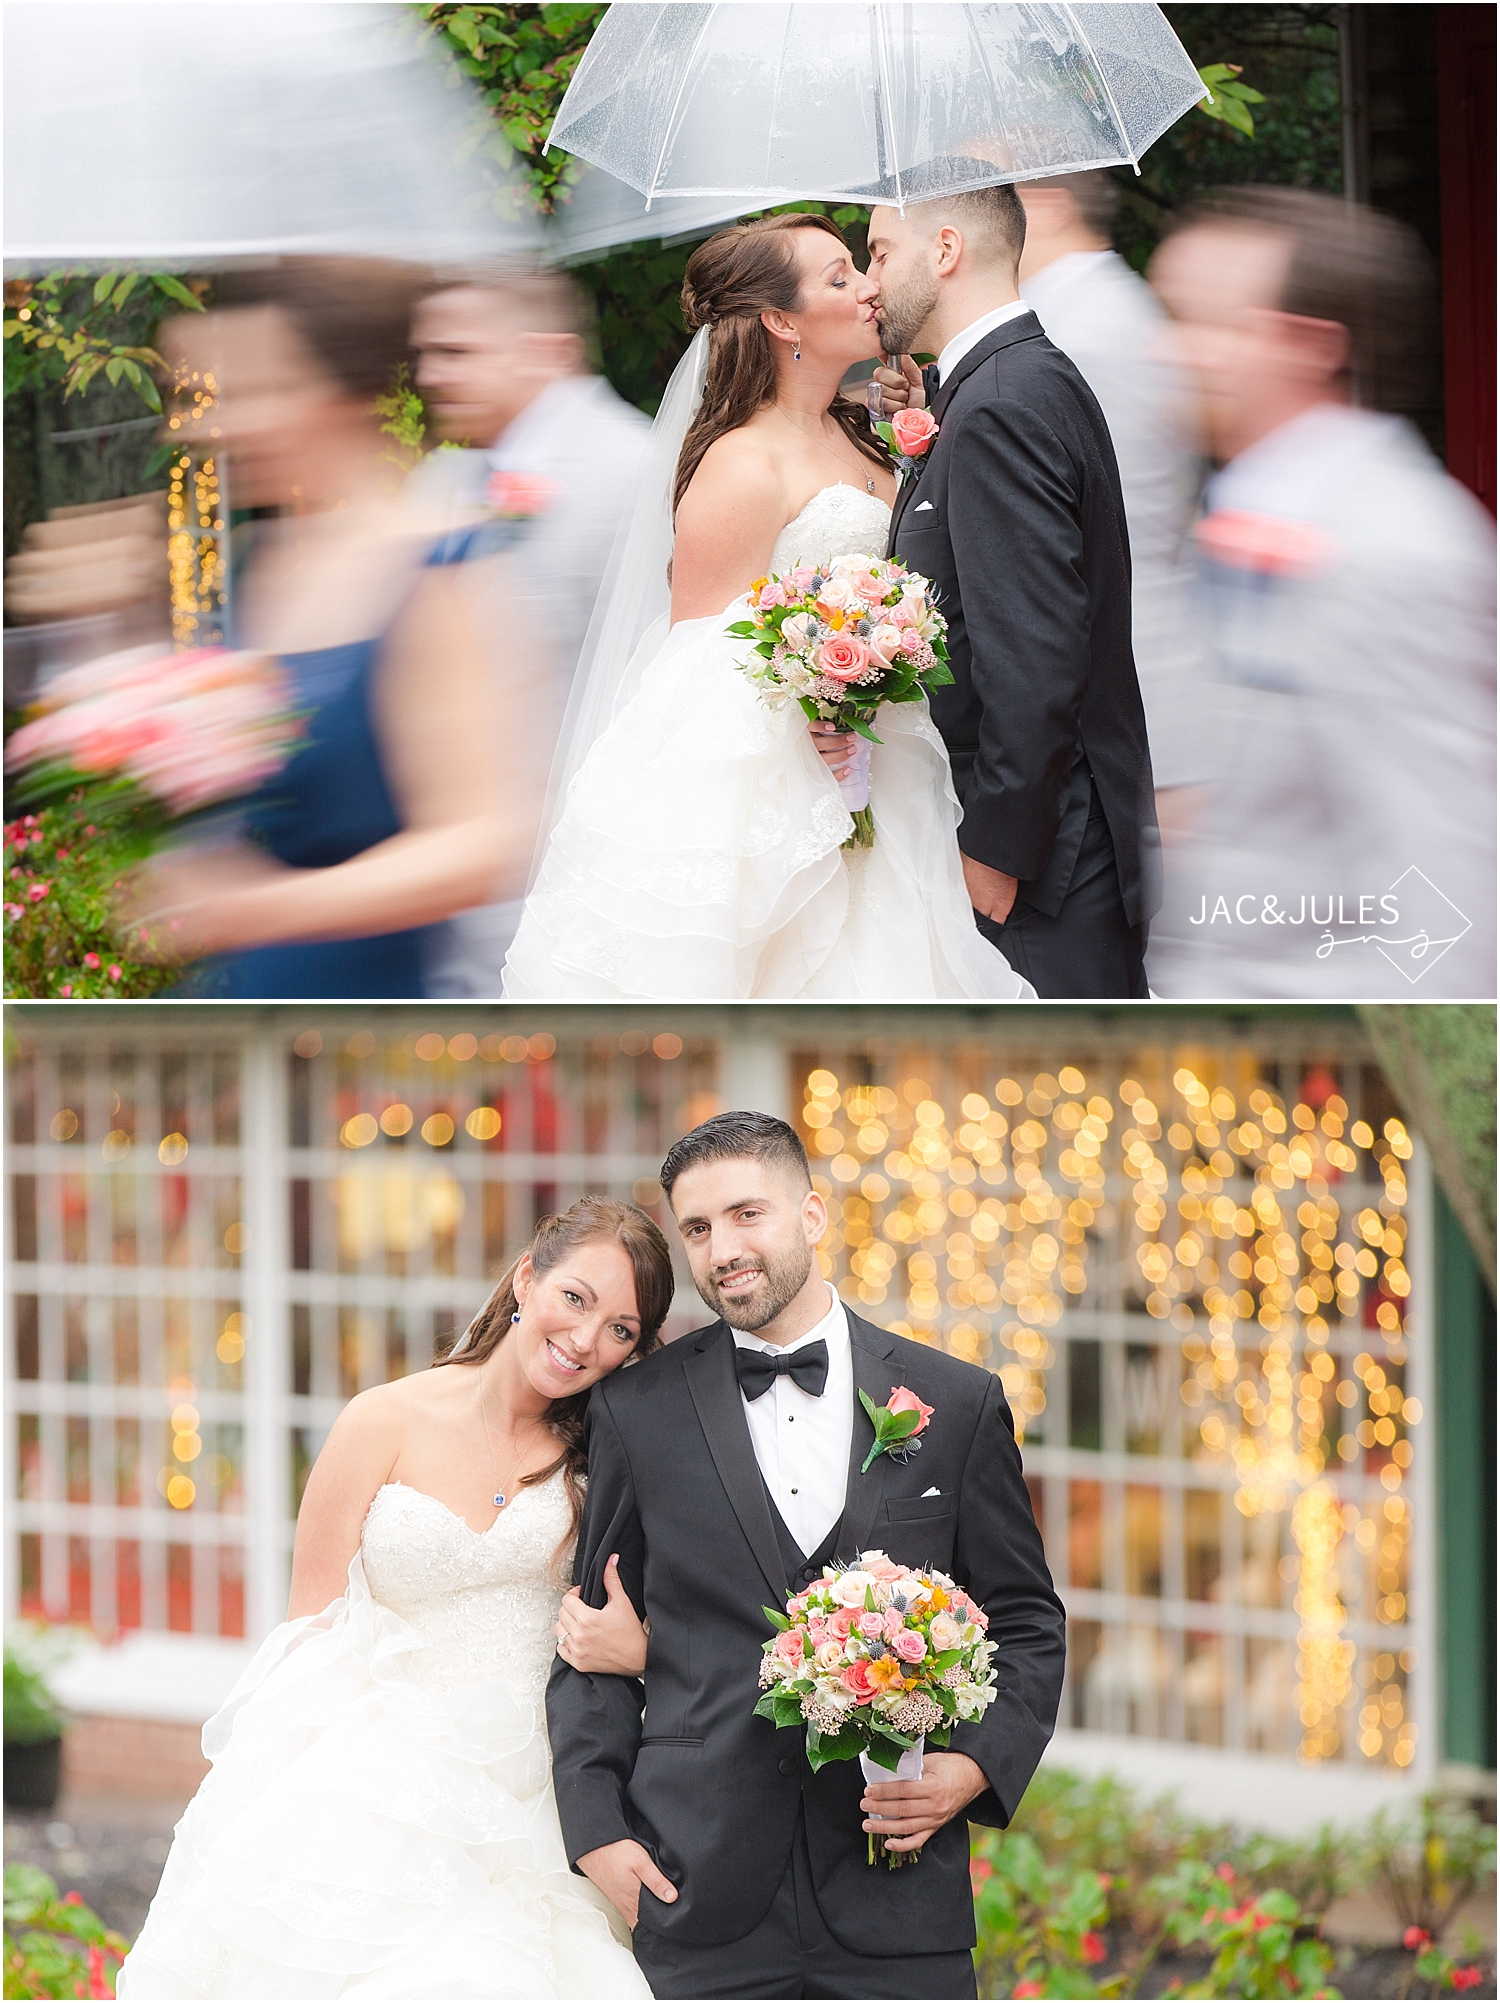 A creative photo by jacnjules of a bride and groom with an umbrella in Smithville, NJ